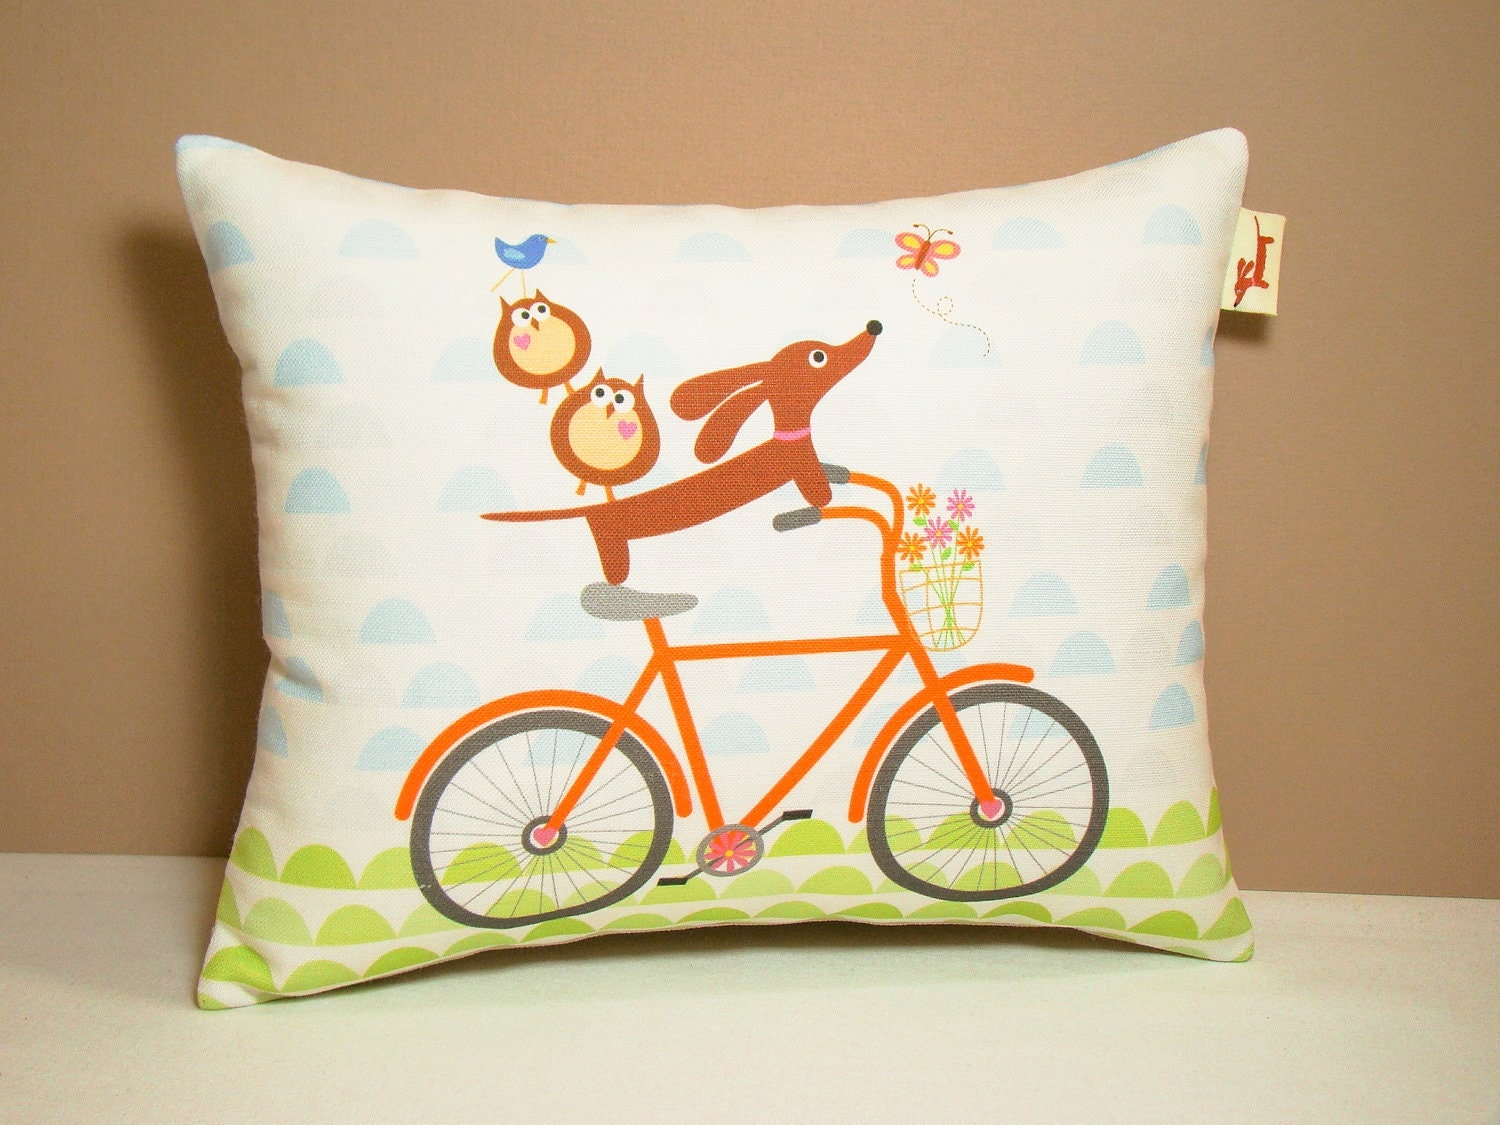 Dachshund Home Decor Dachshund Pillow Doxies And Owl Ride A Bicycle Dog Home